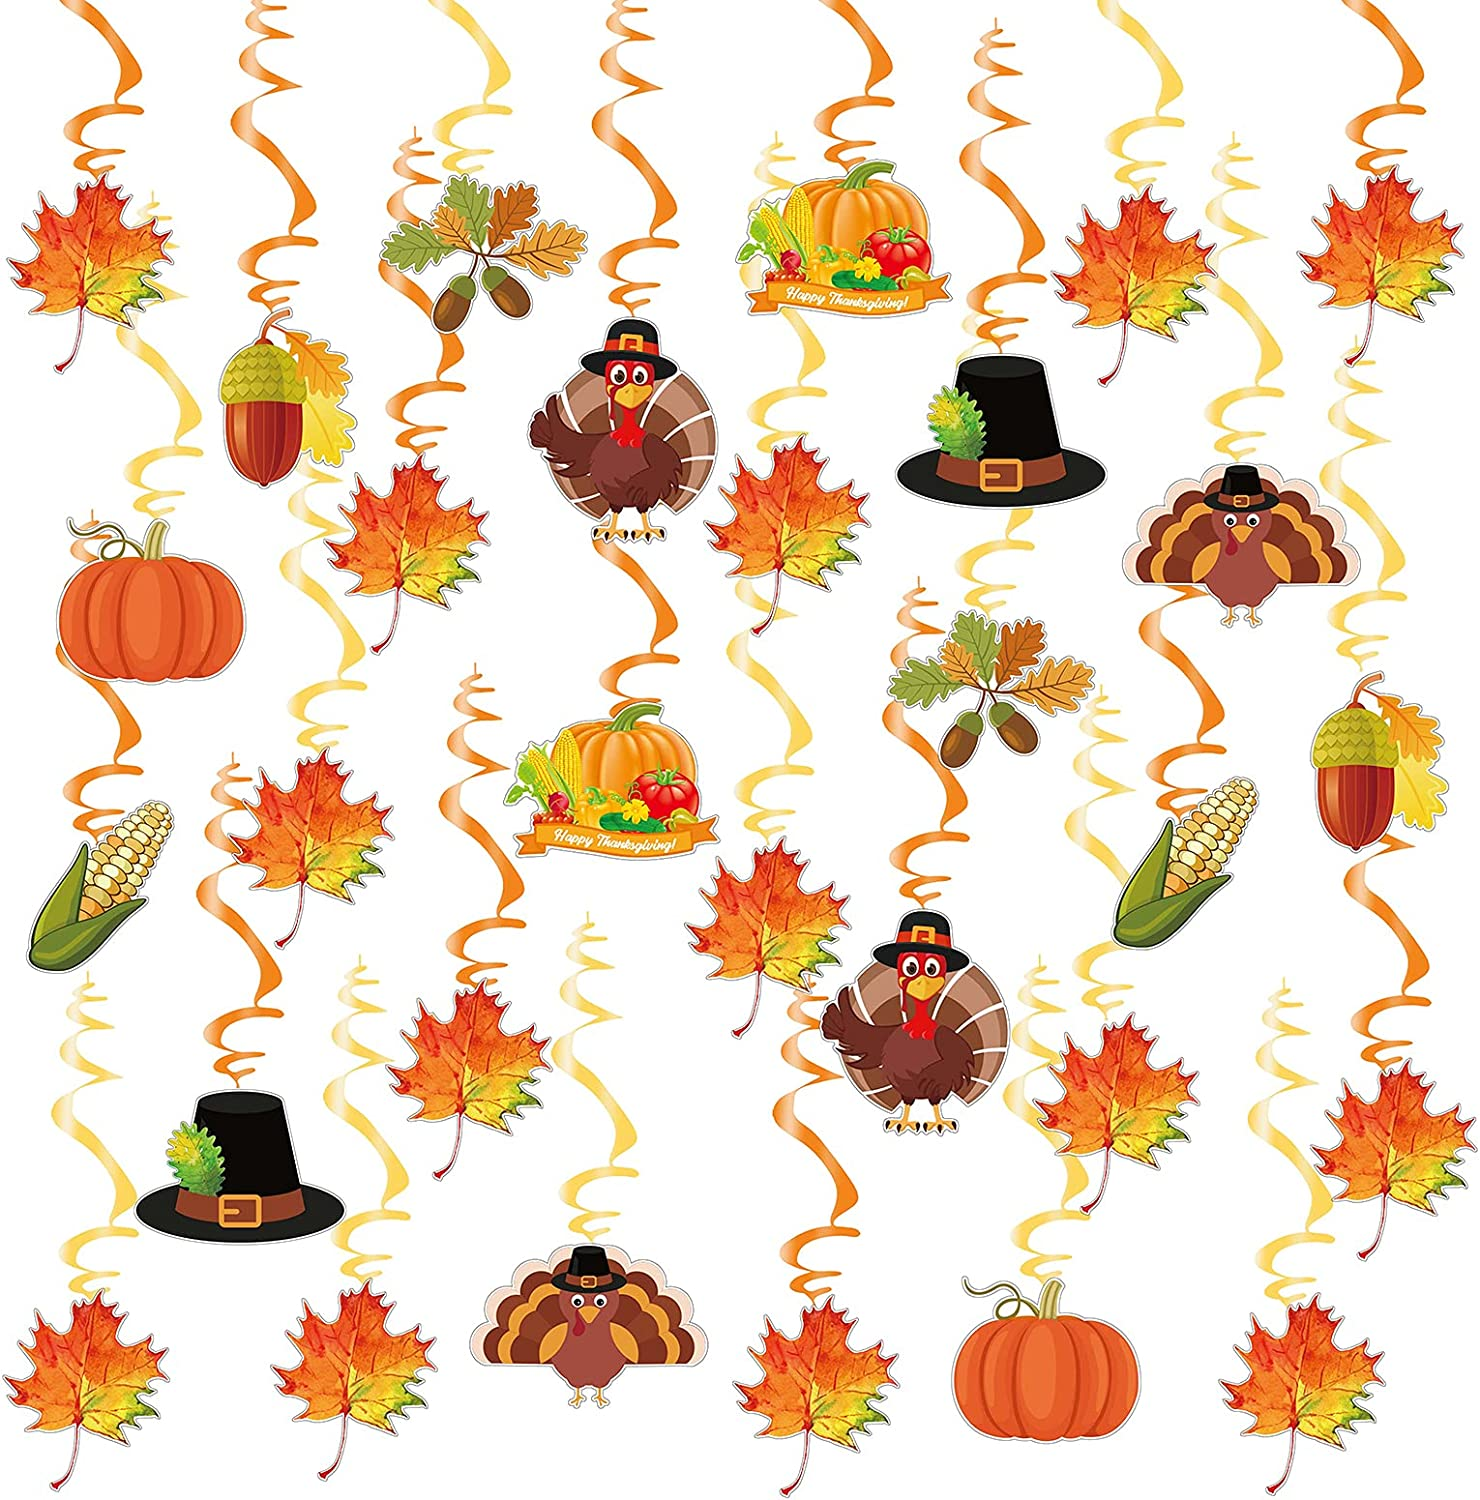 30 Pcs Fall Hanging Swirls Thanksgiving Decorations Pumpkin Maple Leaves Flower Turkey Autumn Hanging Swirls Ceiling Streamers for Home Office Indoor Outdoor Fall Harvest Party Supplies